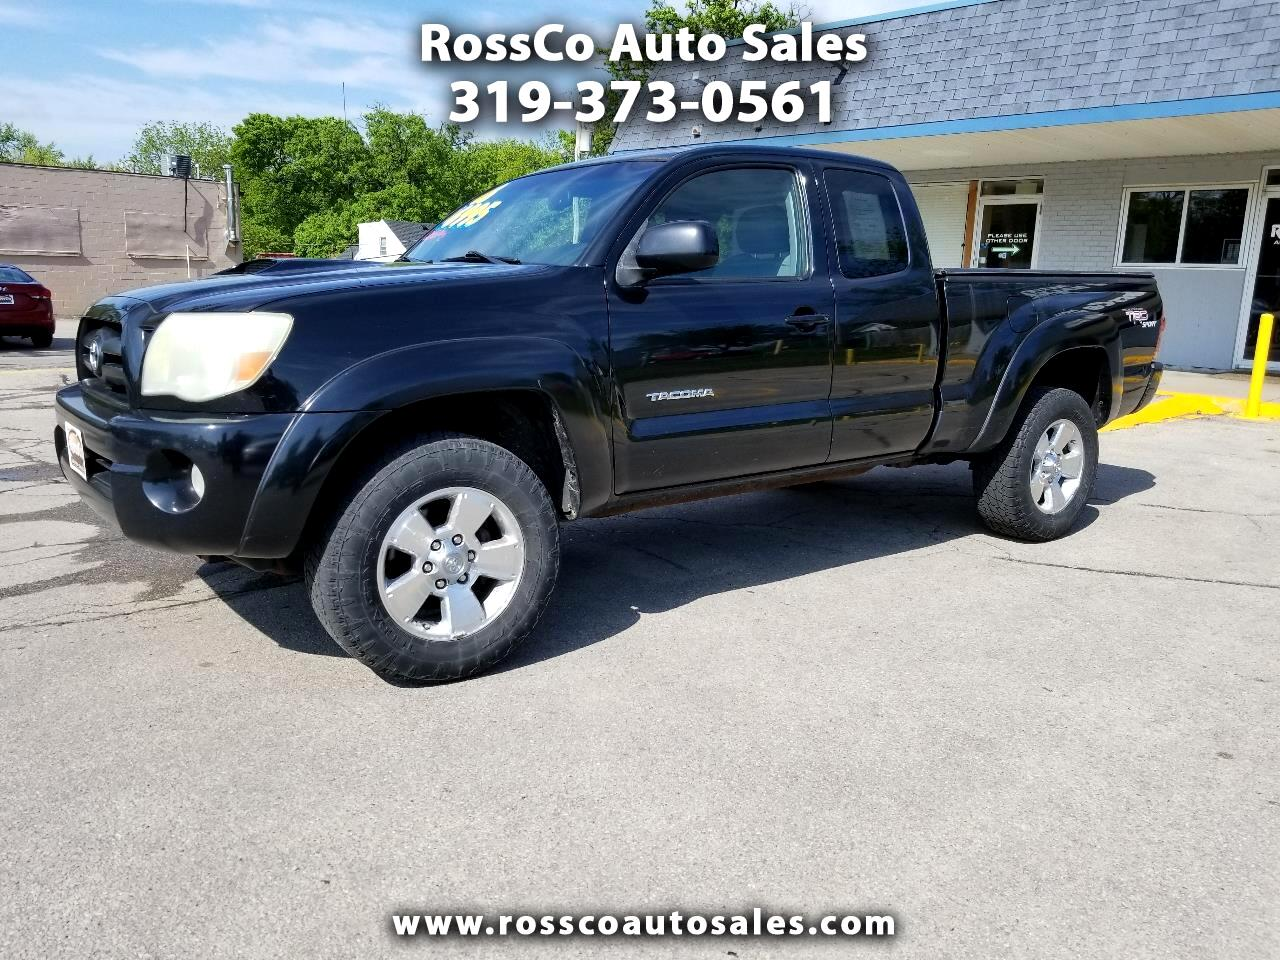 2006 Toyota Tacoma PreRunner Access Cab V6 2WD